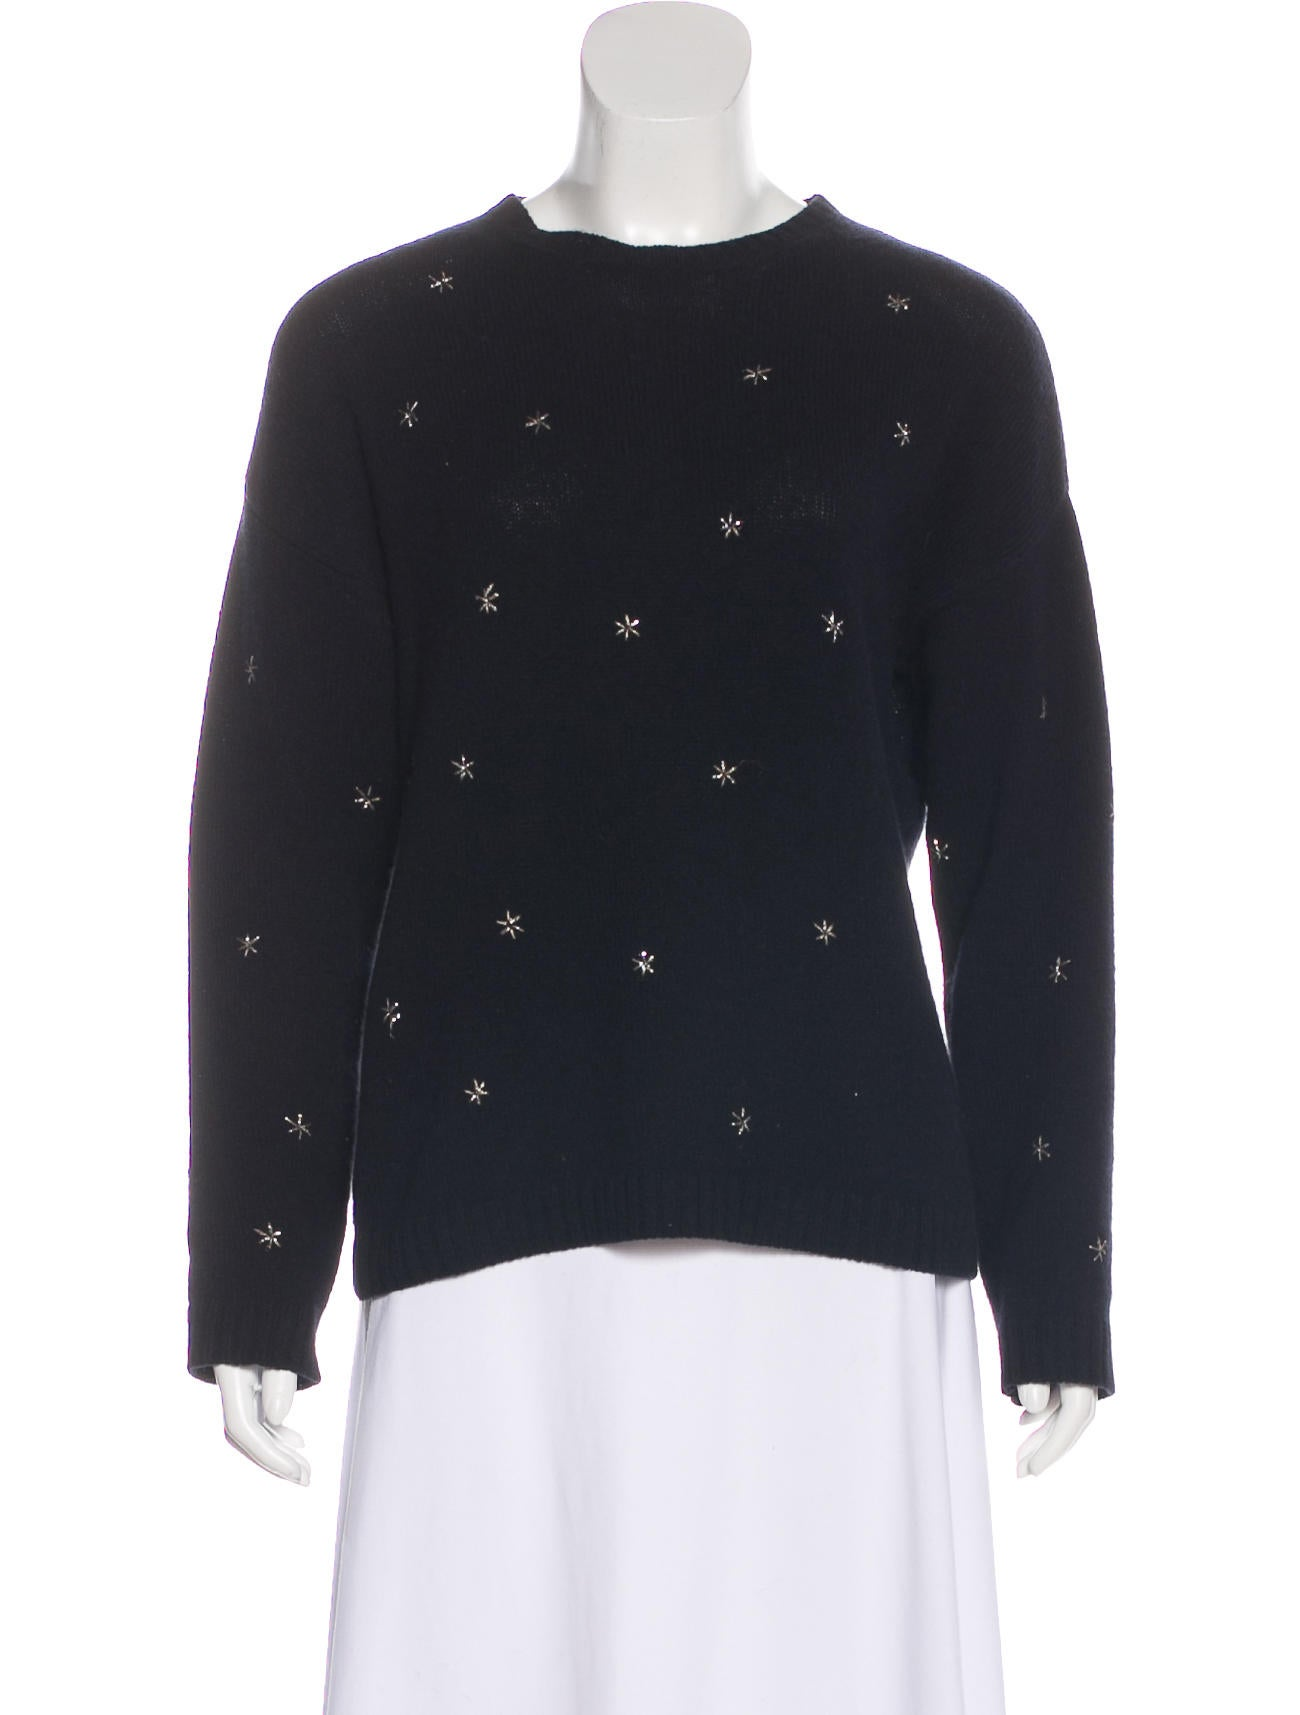 2017 Astrological Sweater by Christian Dior